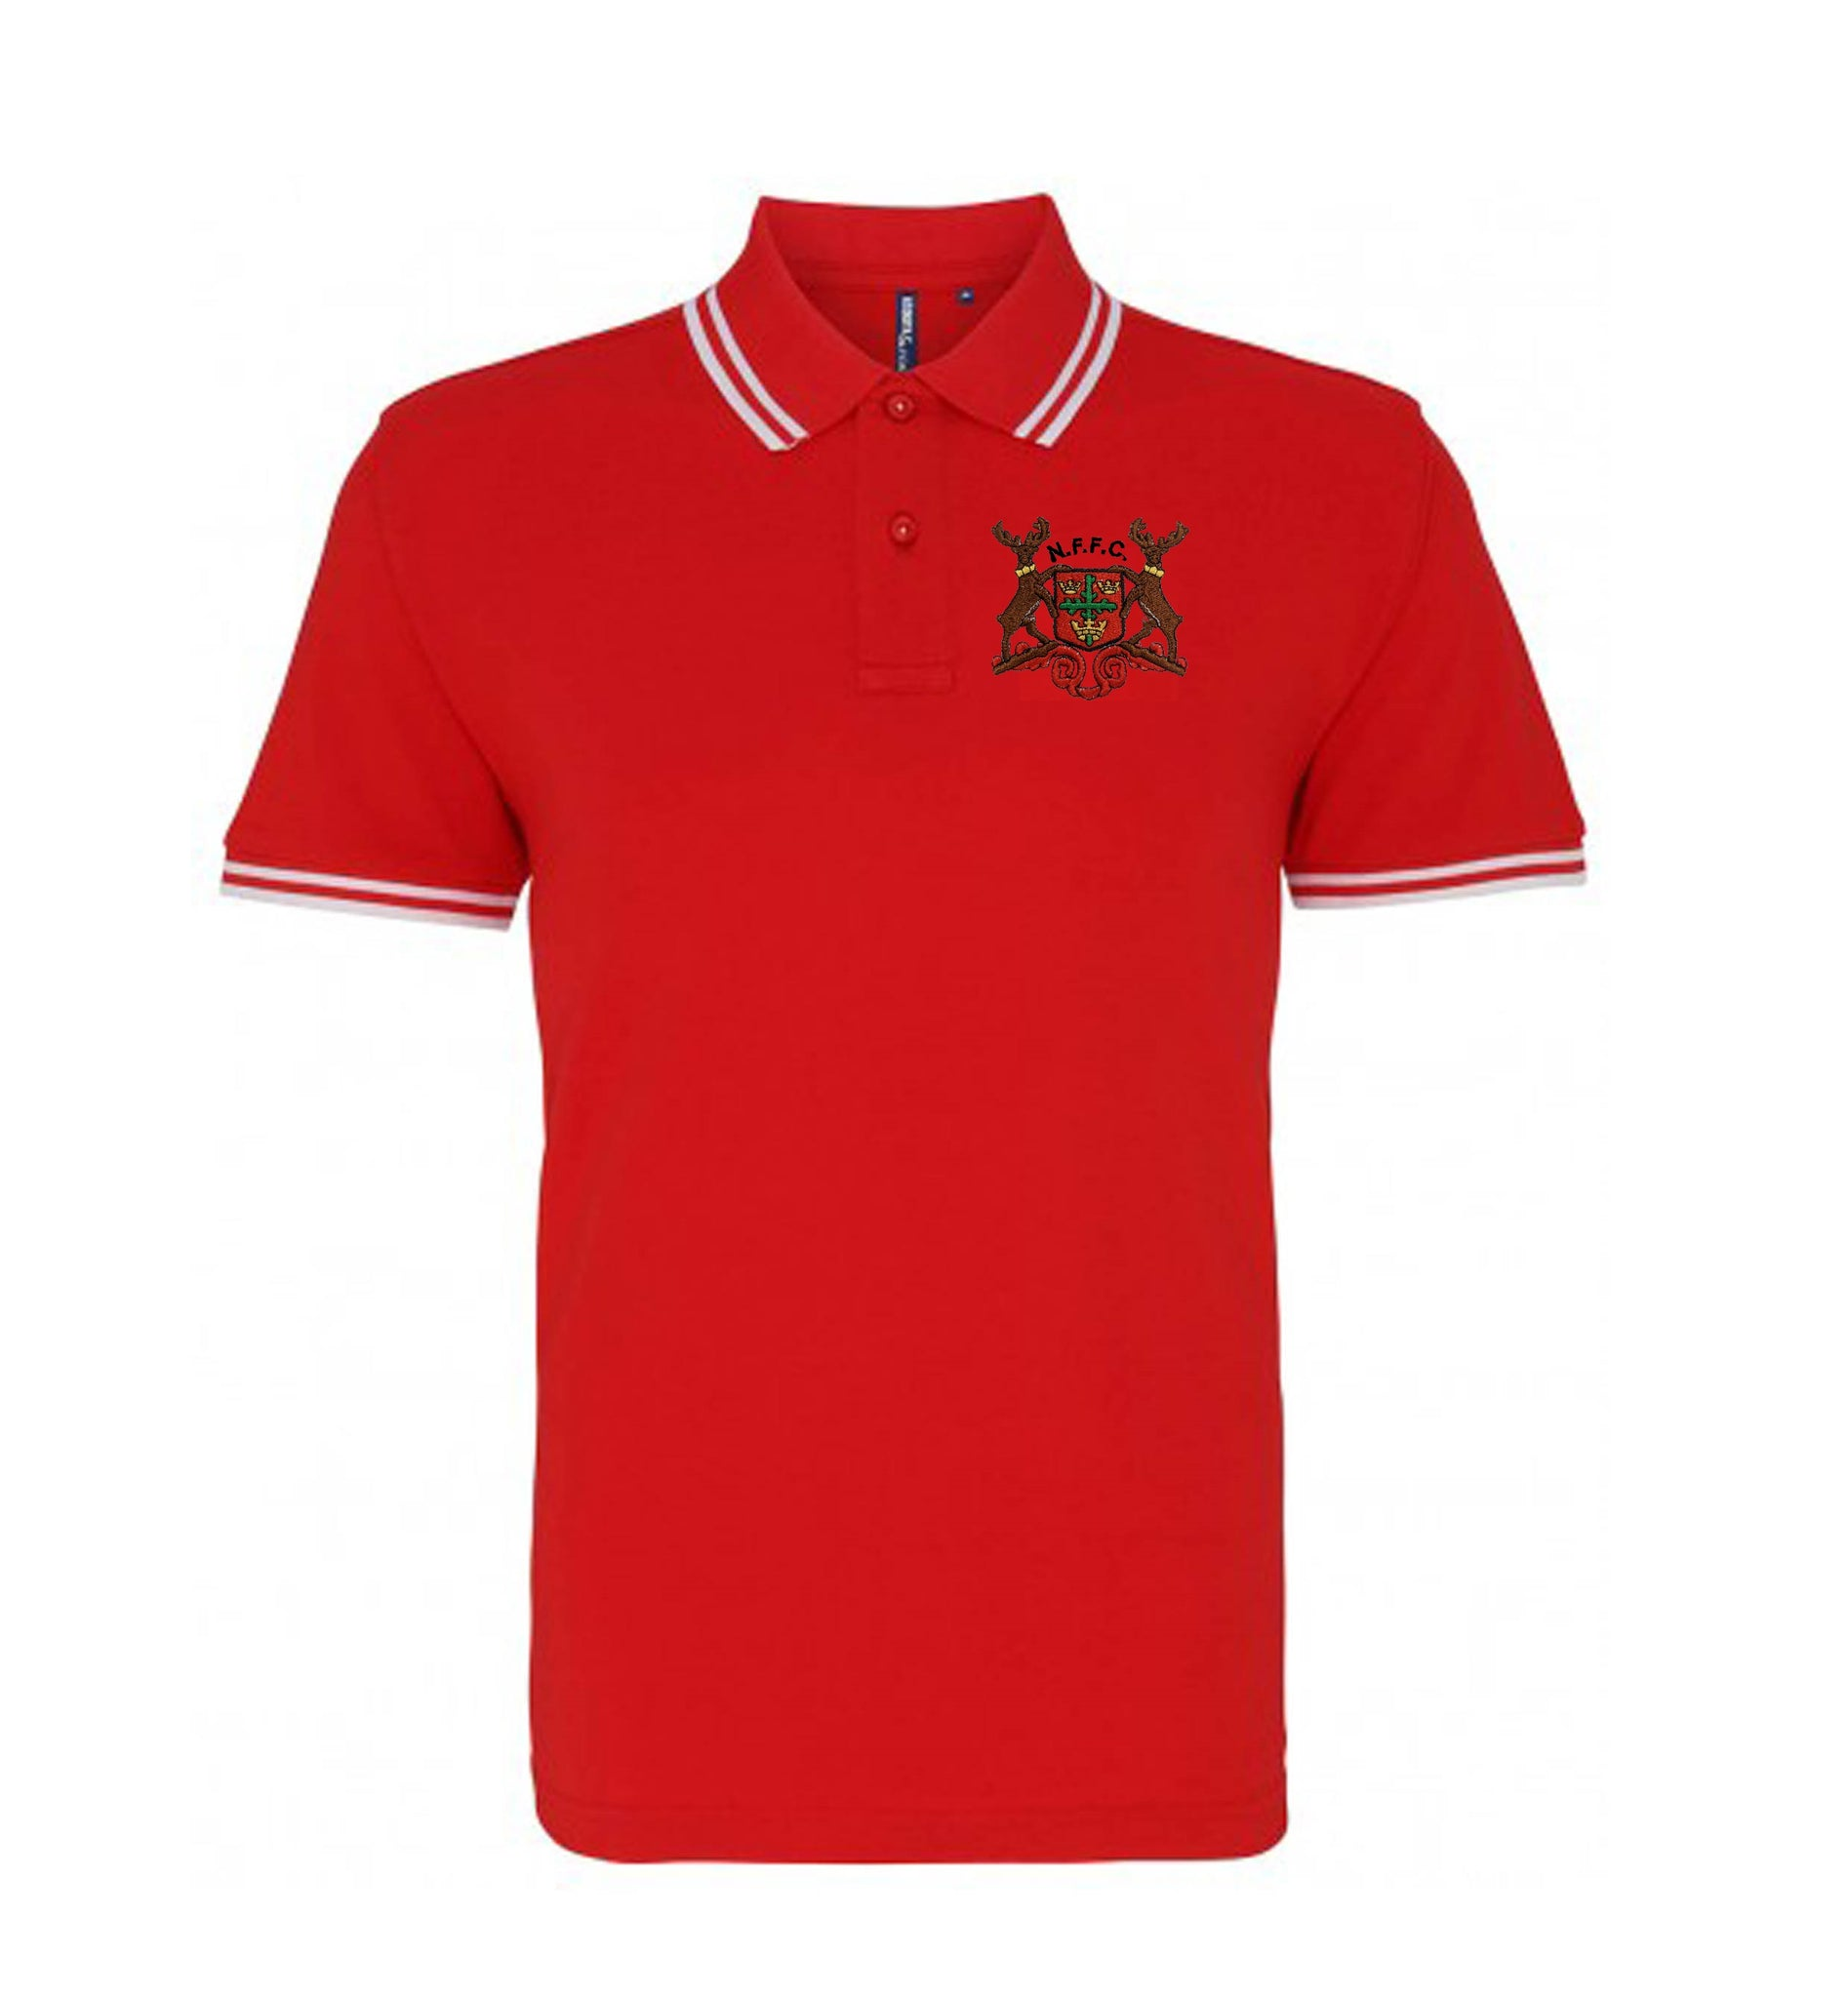 Nottingham Forest Retro Football Iconic Polo 1960-1970s - Polo